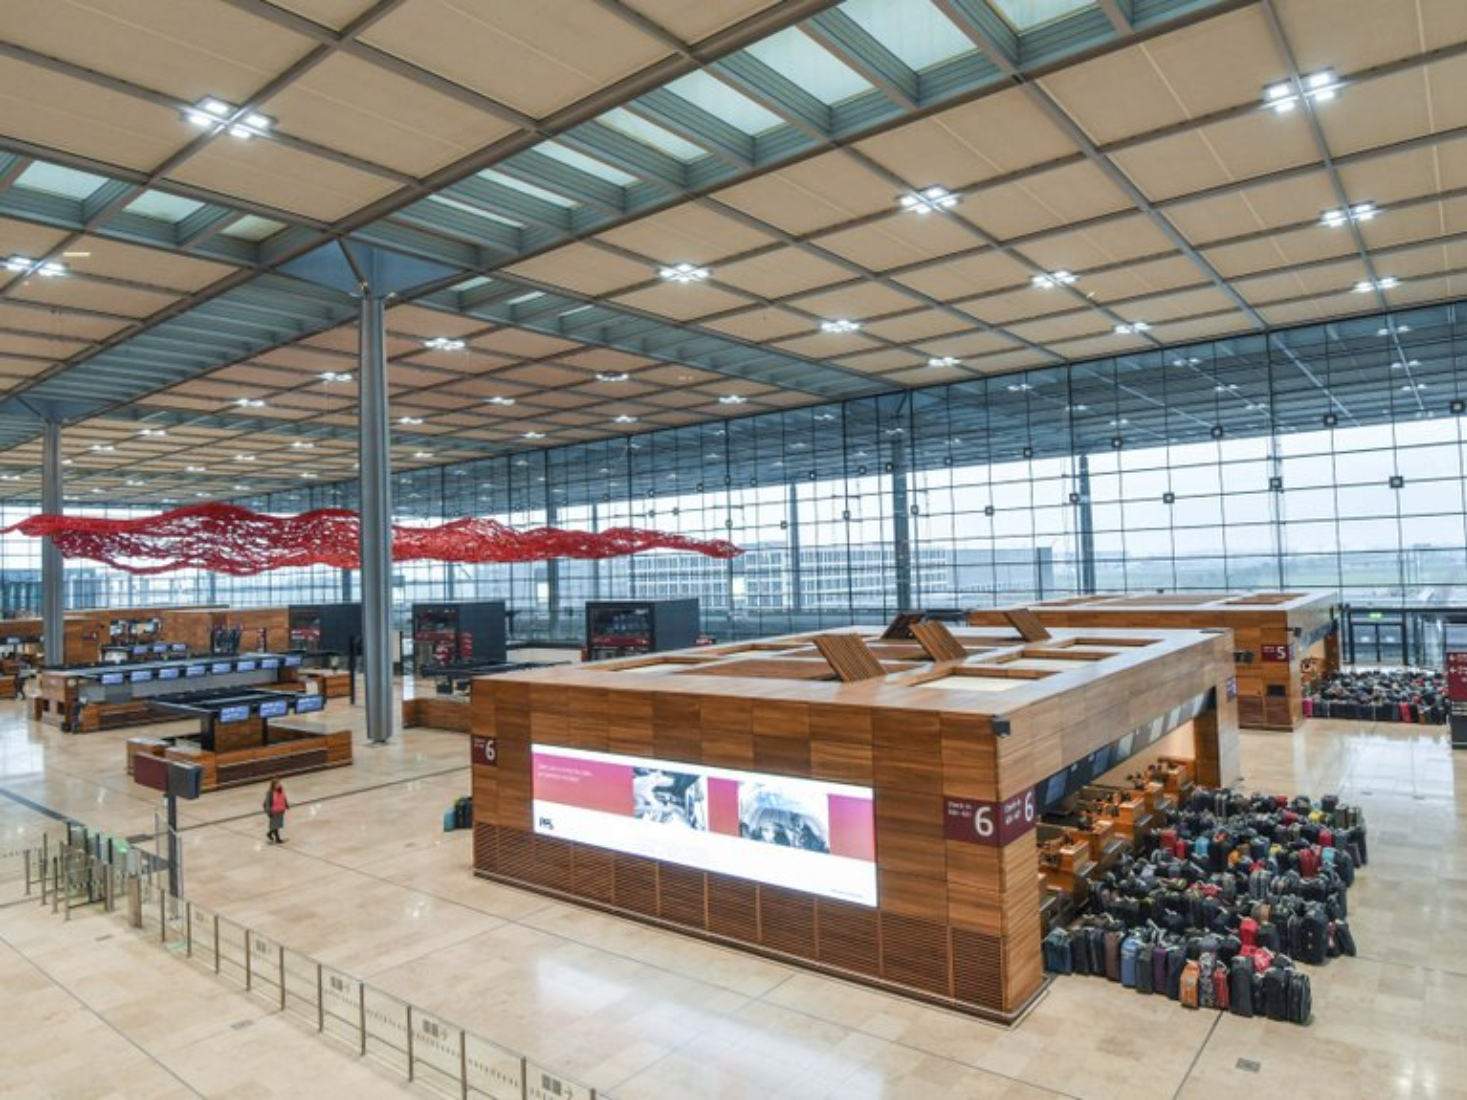 Berlin's much-delayed new airport to open Oct. 31 next year